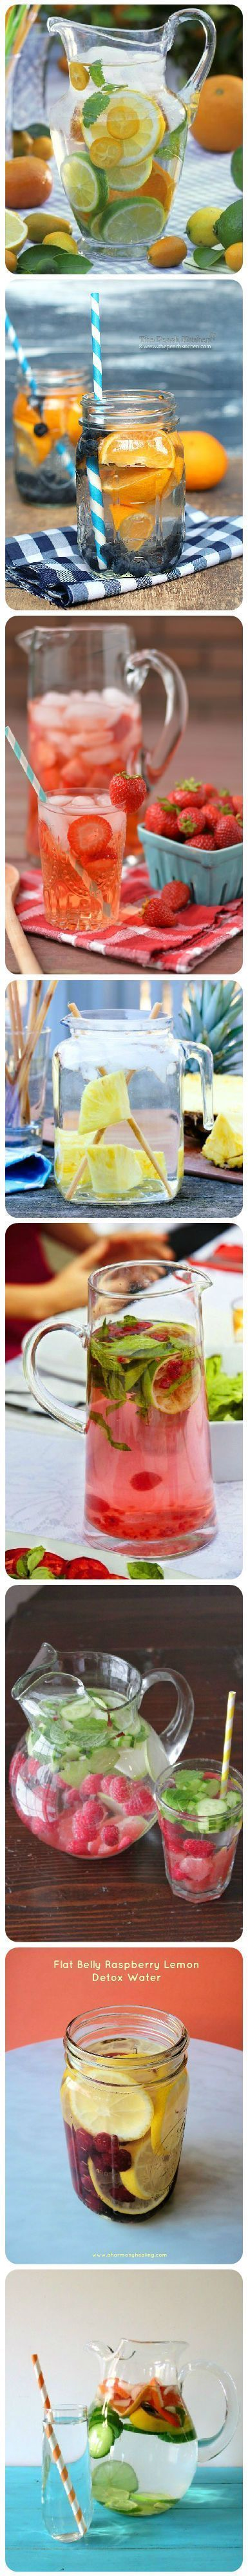 25 Detox Waters For Clean And Healthy Living | Cleansing Detox Water Healthy Drinks at Makeup Tutorials. #makeuptutorials | makeuptutorials.com